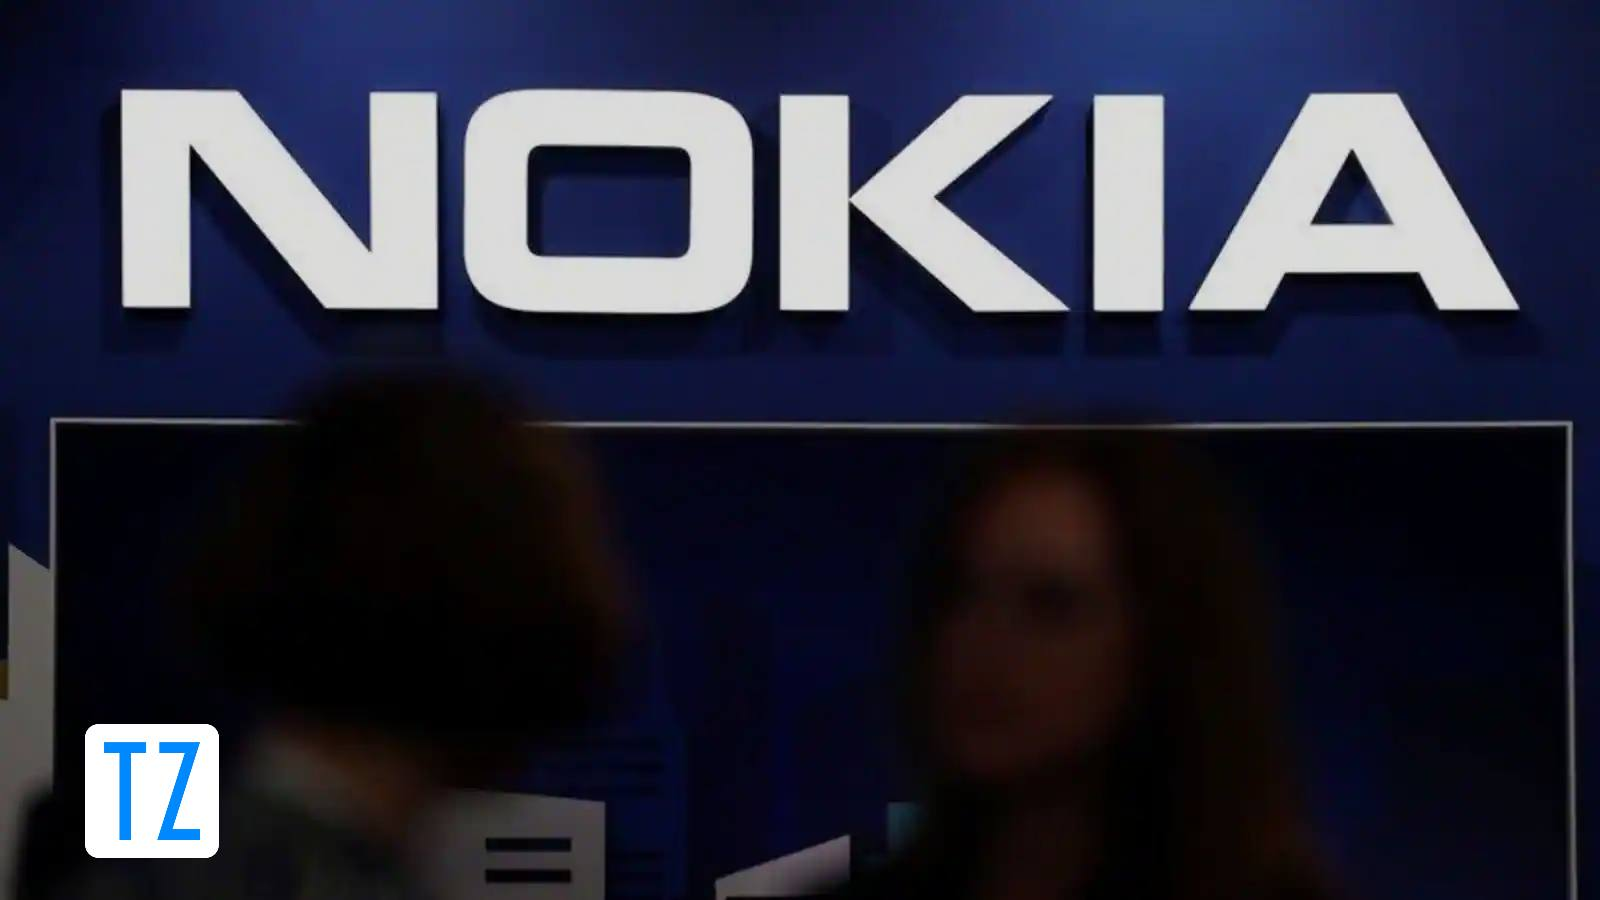 Nokia Launches New Smart Phones on April 8